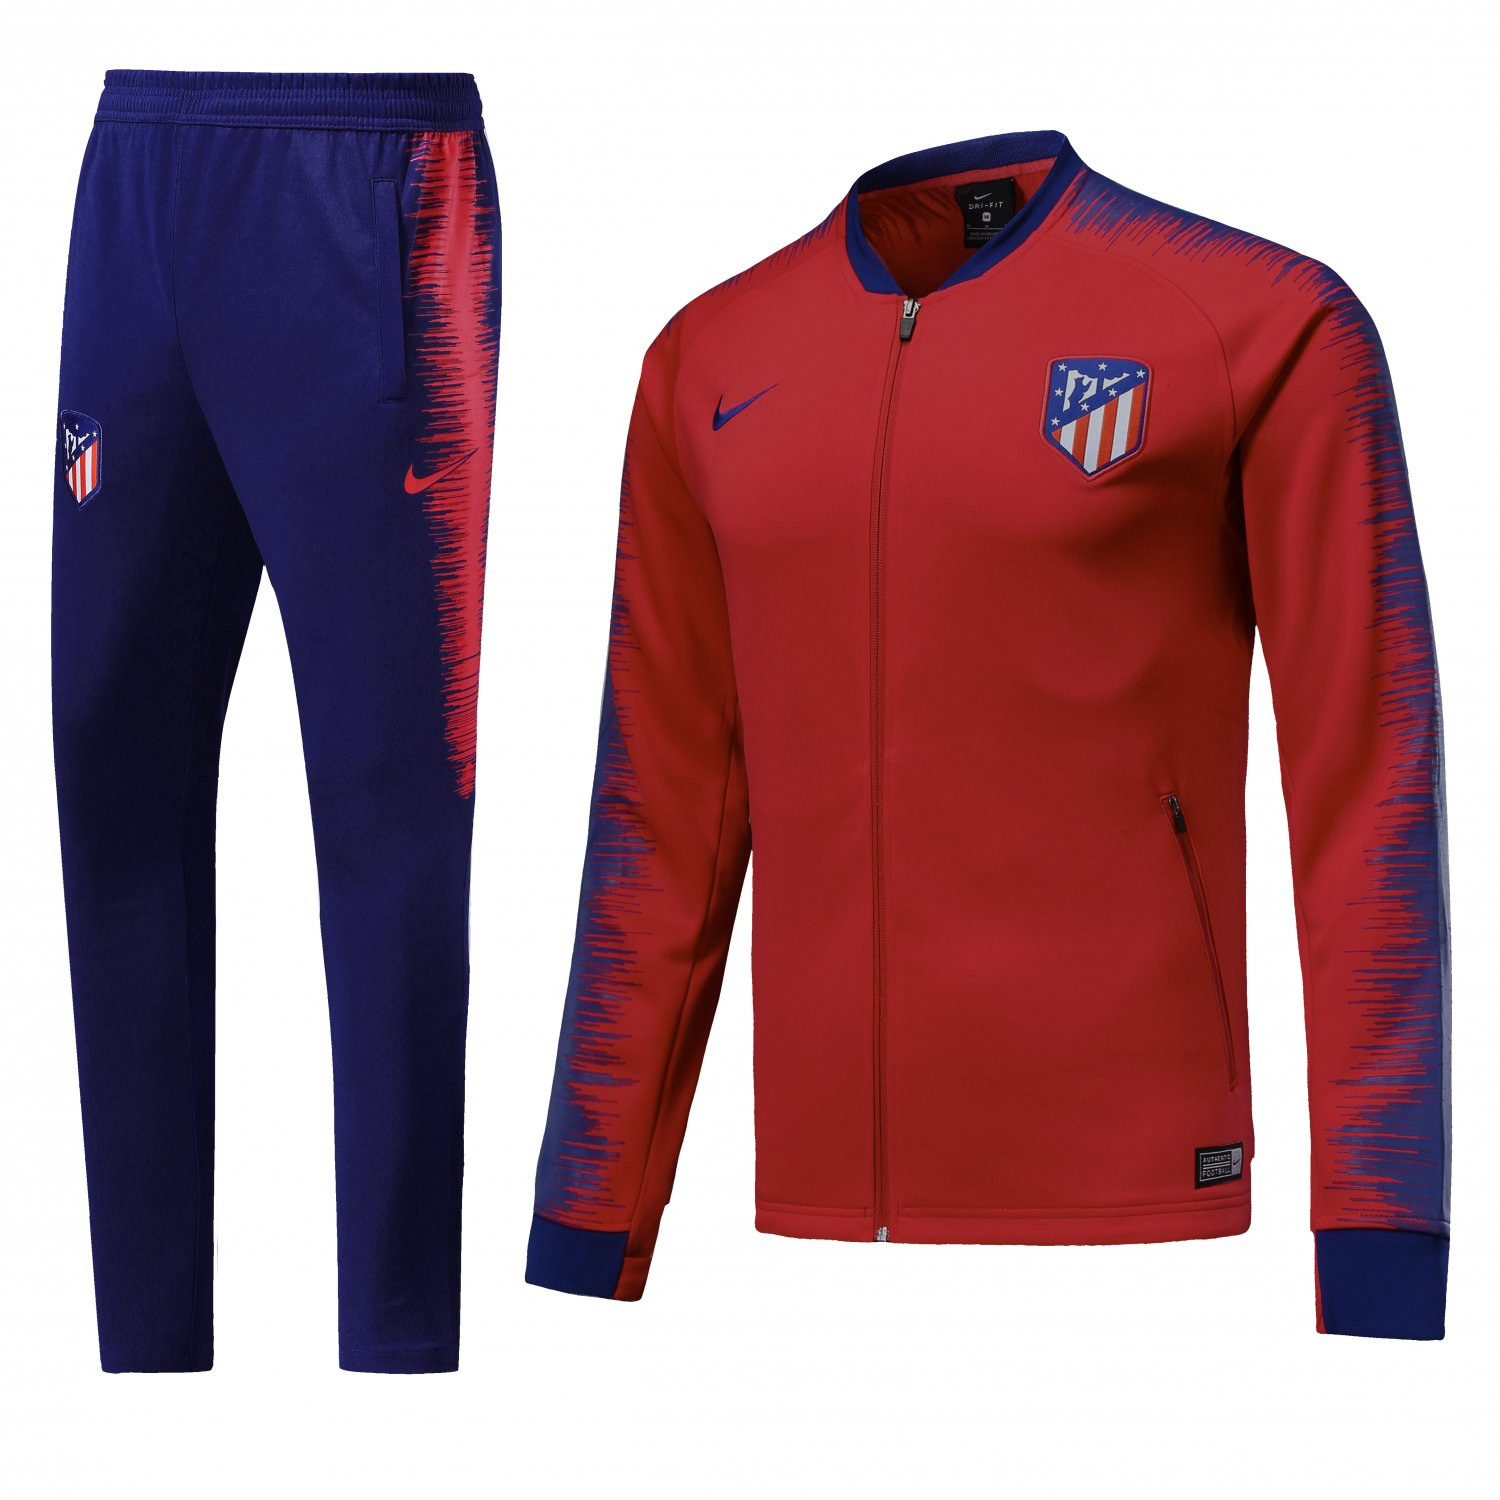 Atletico Madrid jackets and pants 2019 Men football Red kits replica training